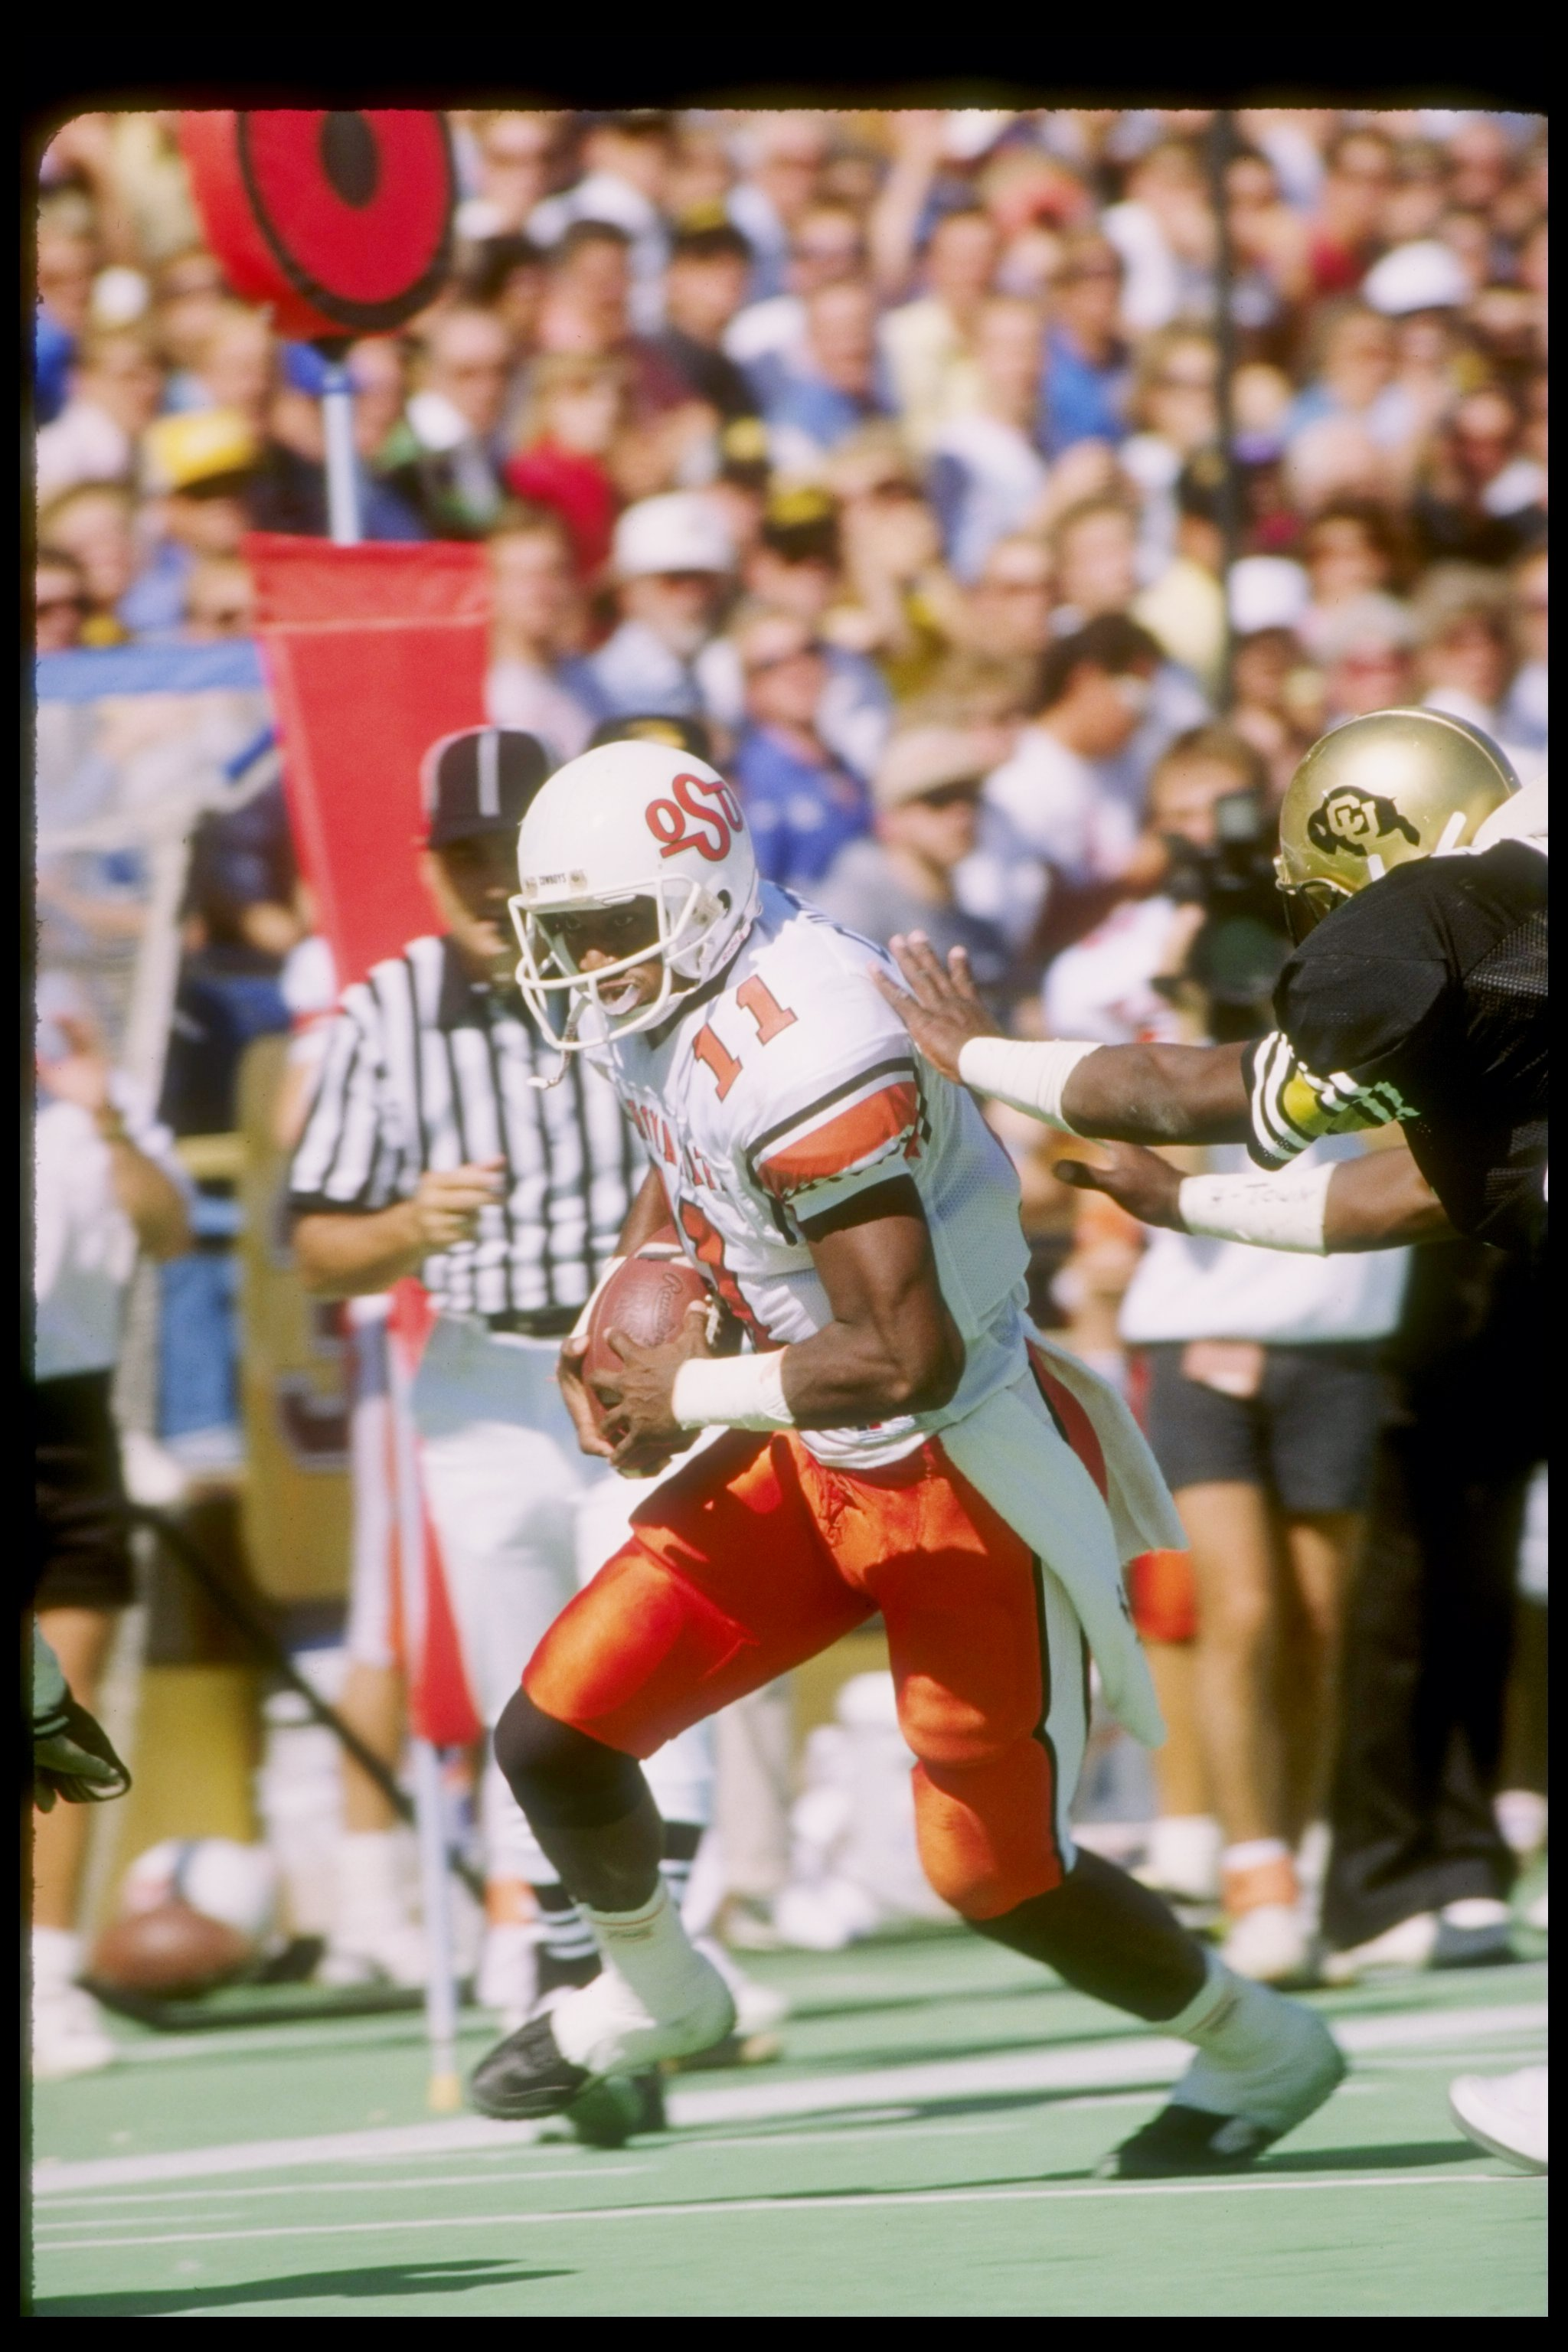 Oct 1988:  Quarterback Hart Lee Dykes of the Oklahoma State Cowboys runs to the end zone during a game versus the Colorado Buffaloes at Folsom Field in Boulder, Colorado. Mandatory Credit: Allsport  /Allsport